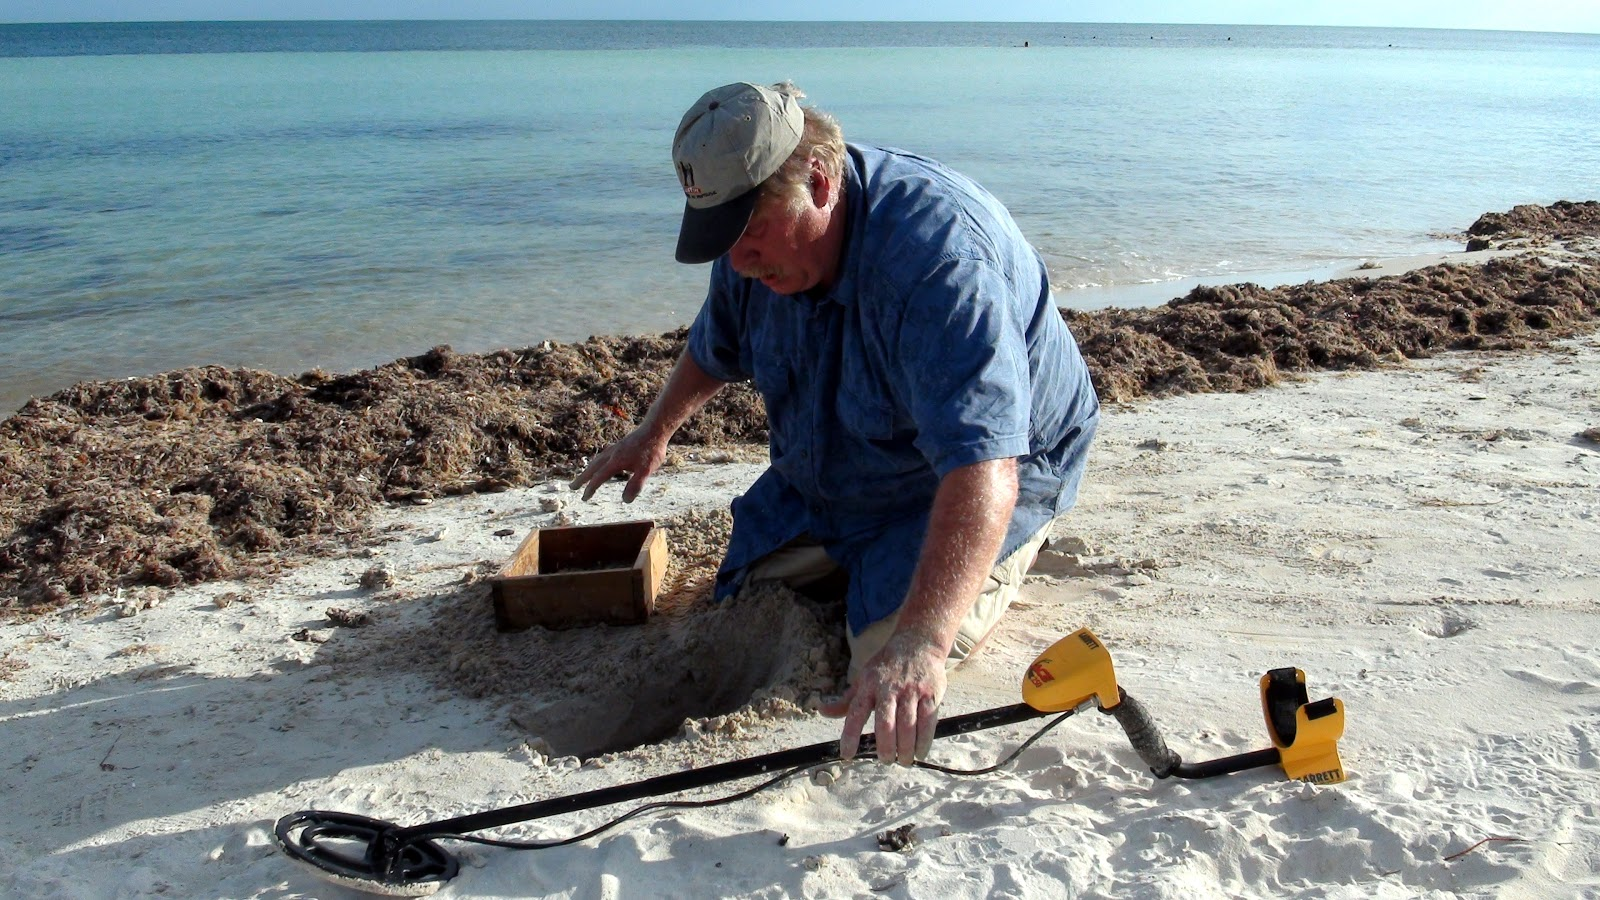 Host jobs crazy fun in the florida keys now that the storm is over